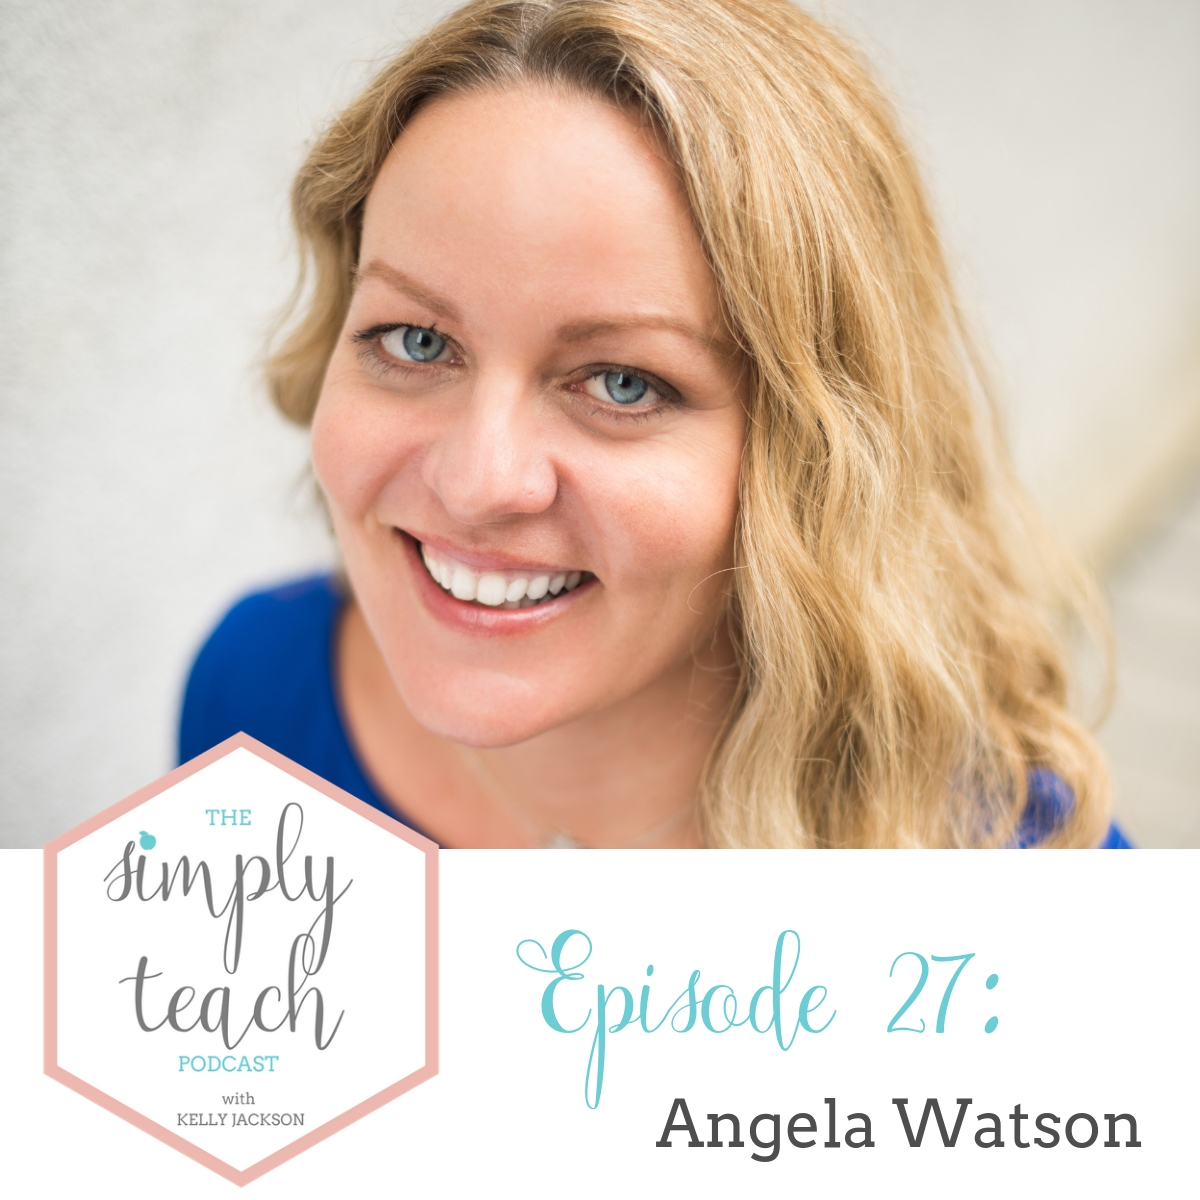 Simply Teach- a podcast for teachers, by teachers. In this episode we talk about time management as a teacher. Angela shares with us practical tips for returning to the classroom after Christmas break and all about the 40 Hour Teacher Work Week.